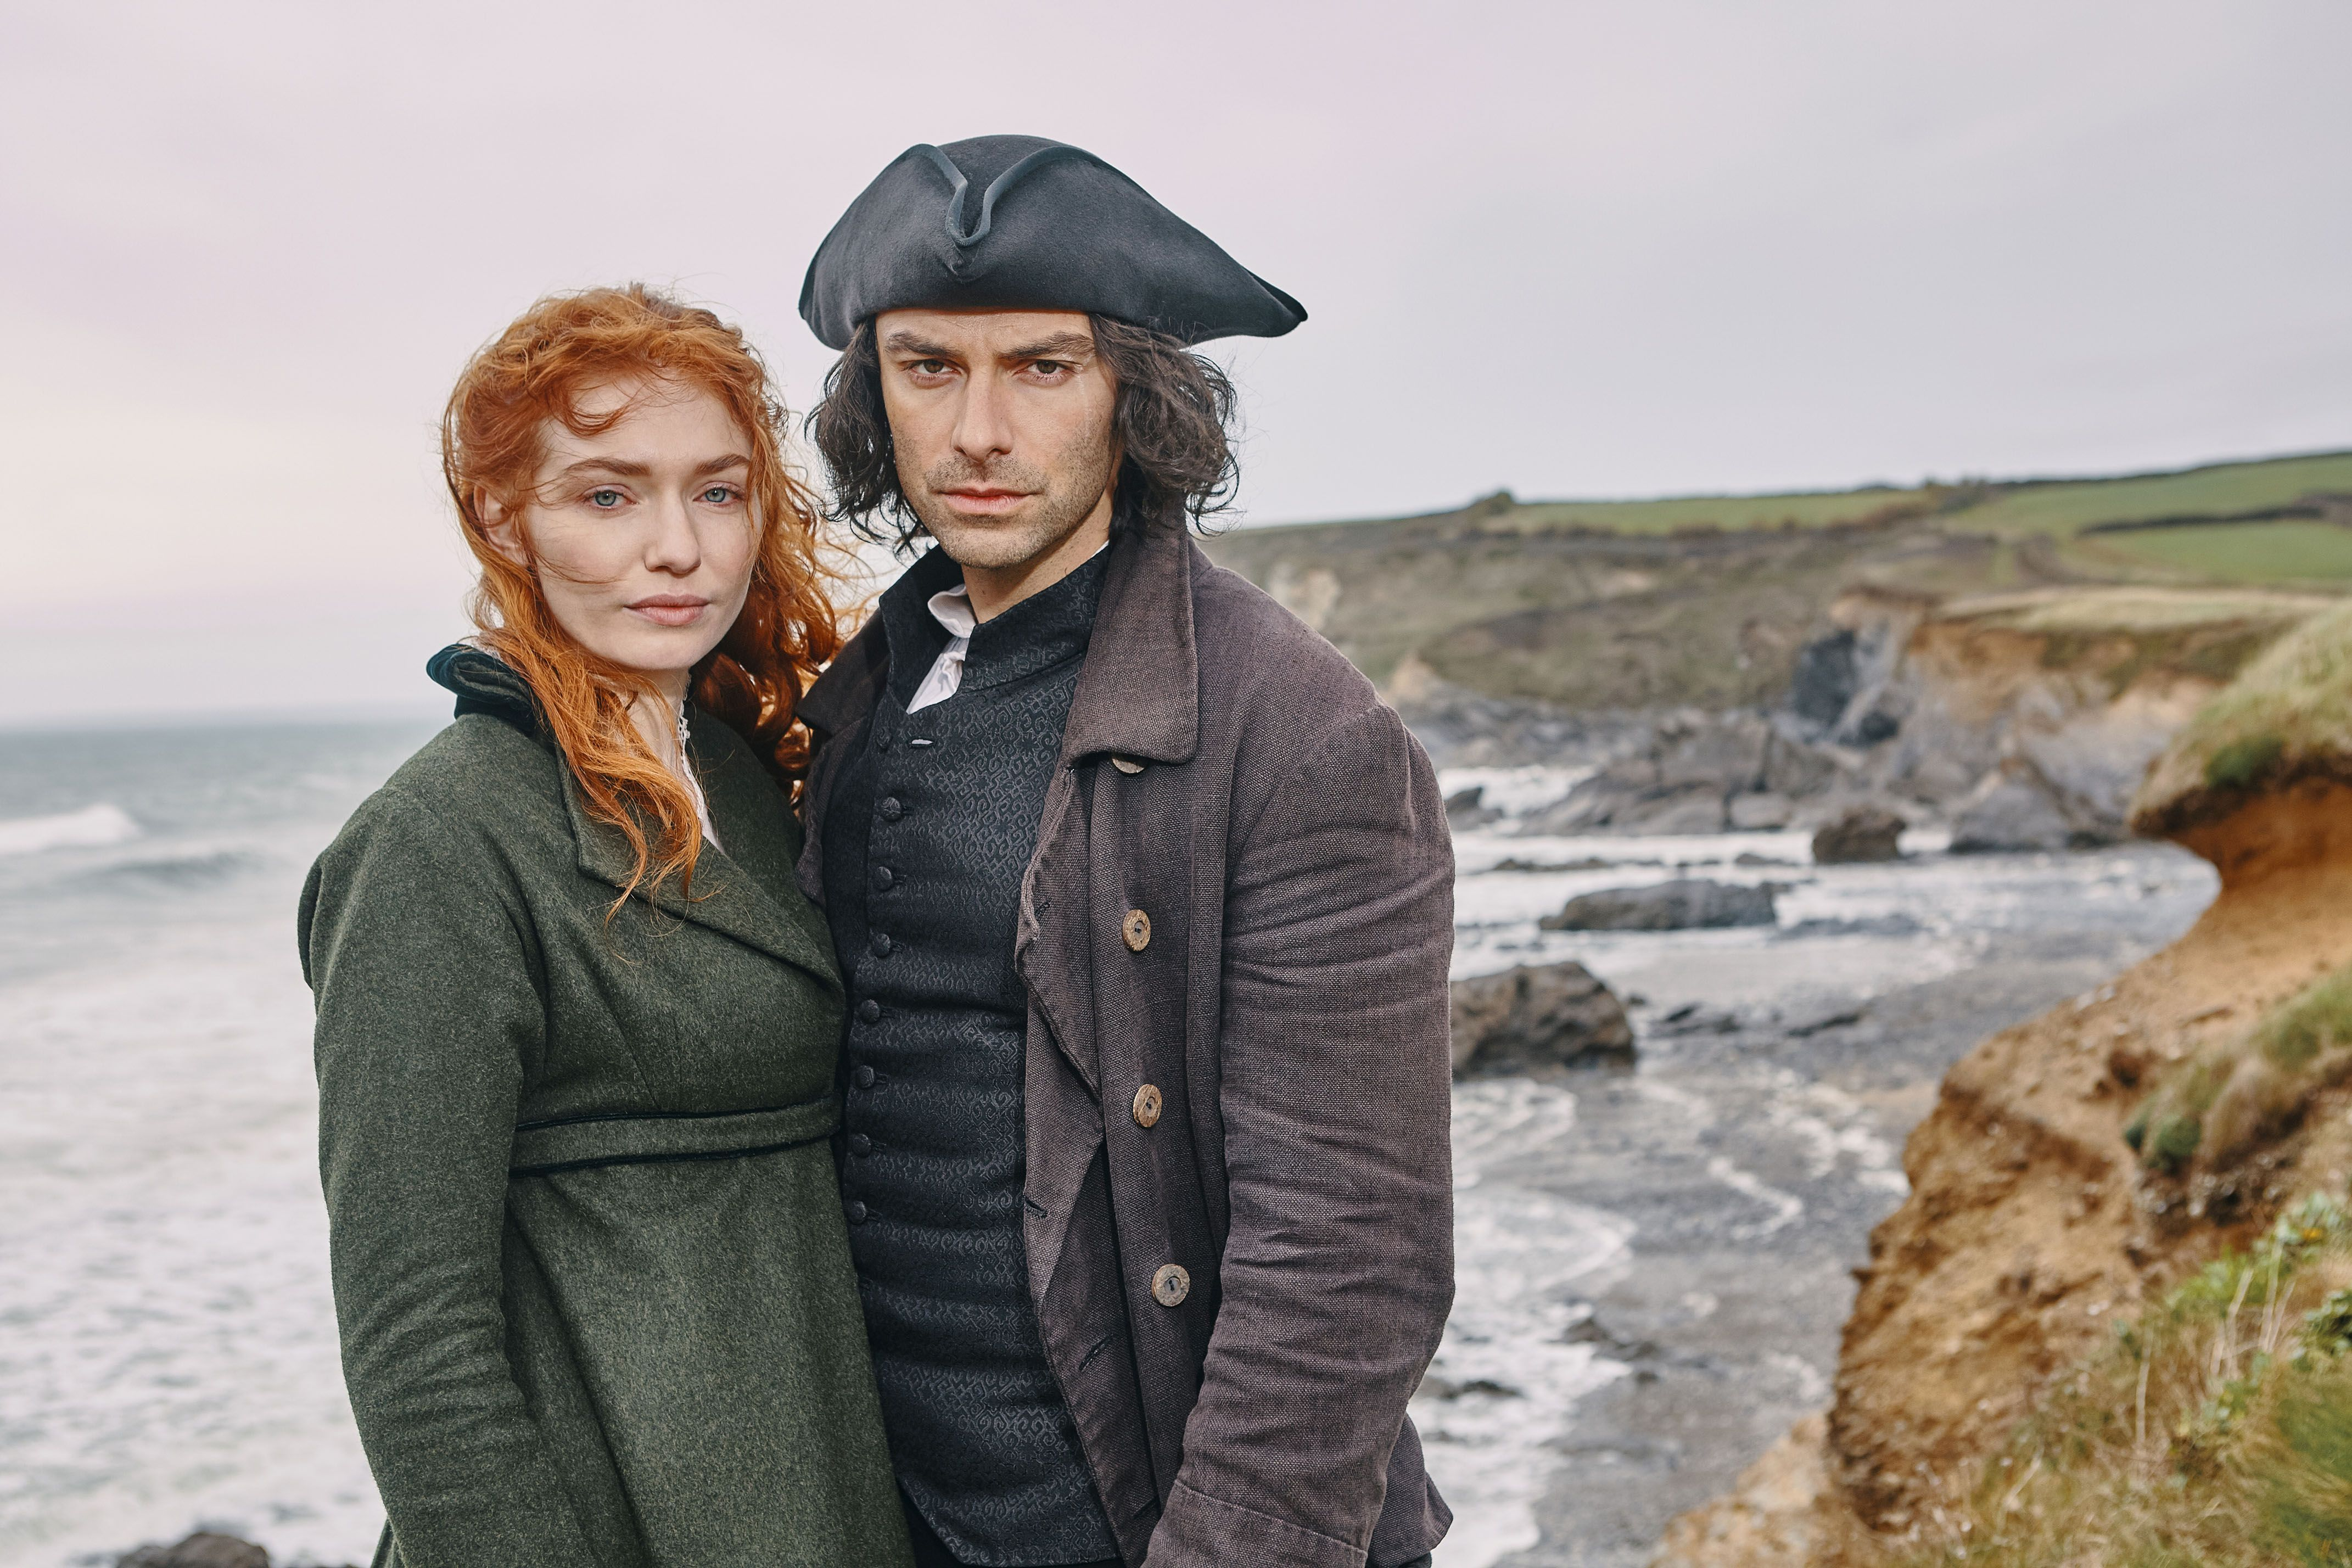 Poldark season 5 - Cast, plot, air date, spoilers